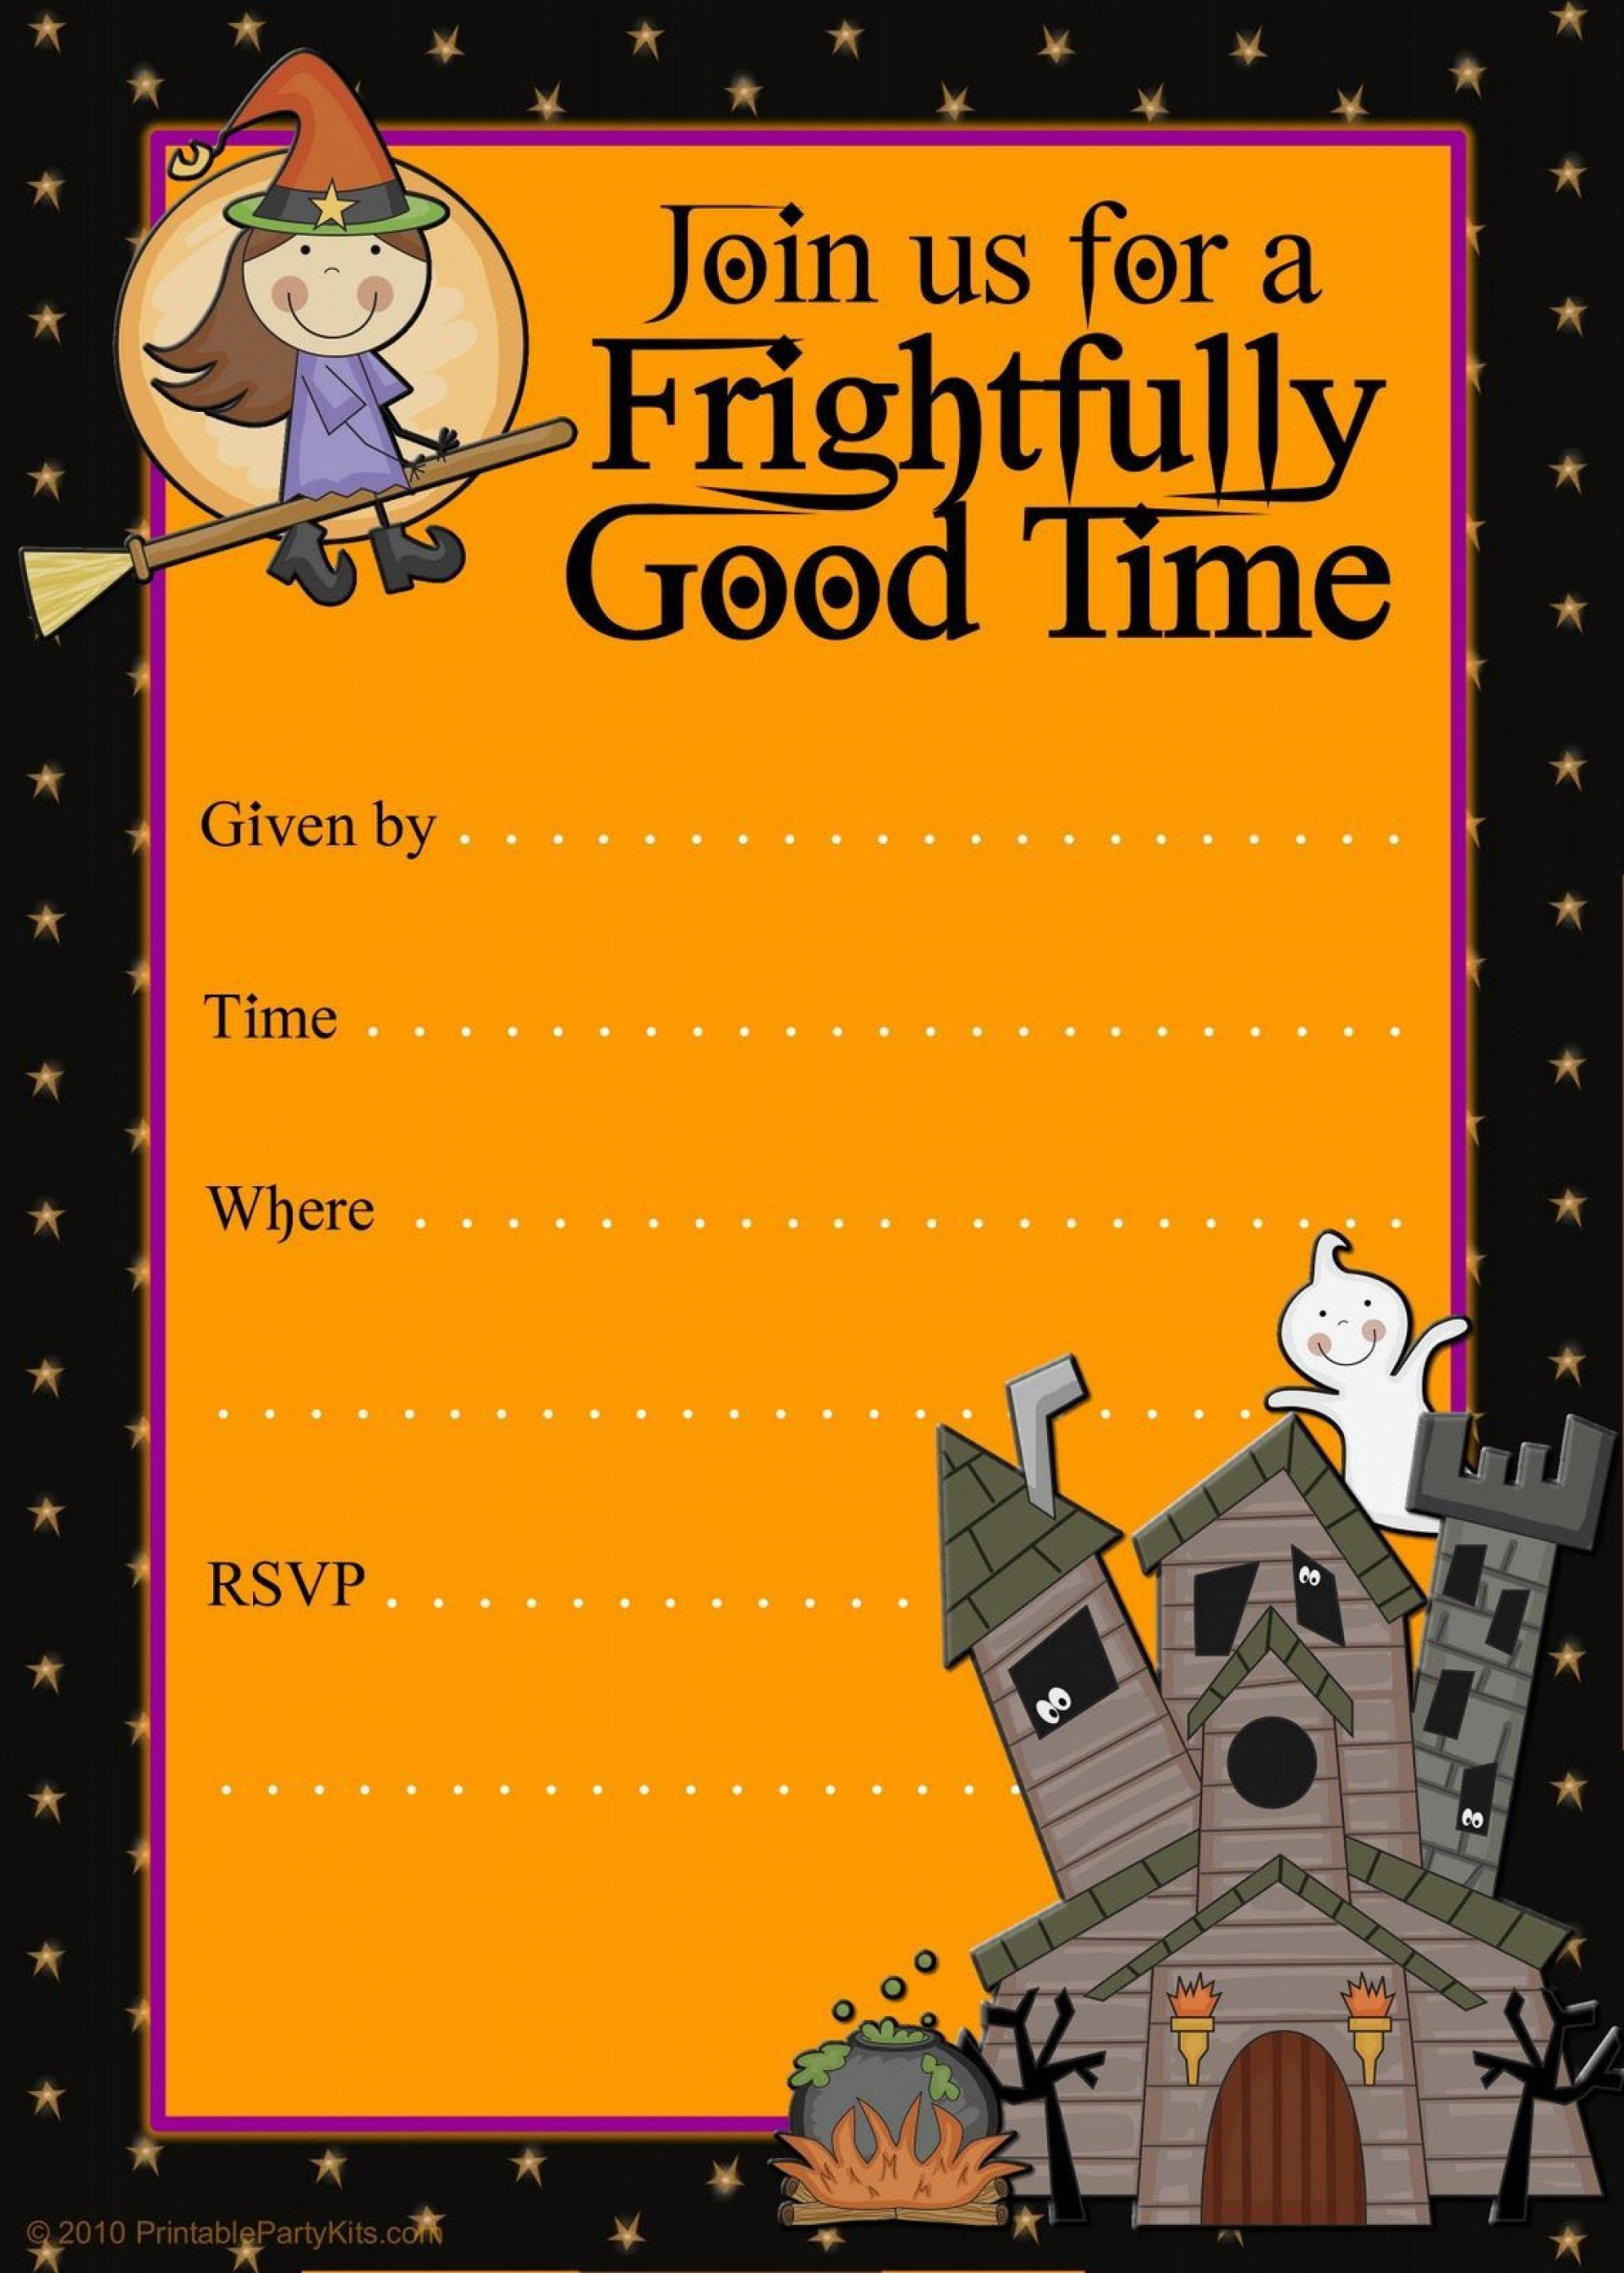 006 Surprising Halloween Party Invite Template High Resolution  Spooky Invitation Free Printable Birthday Download1920